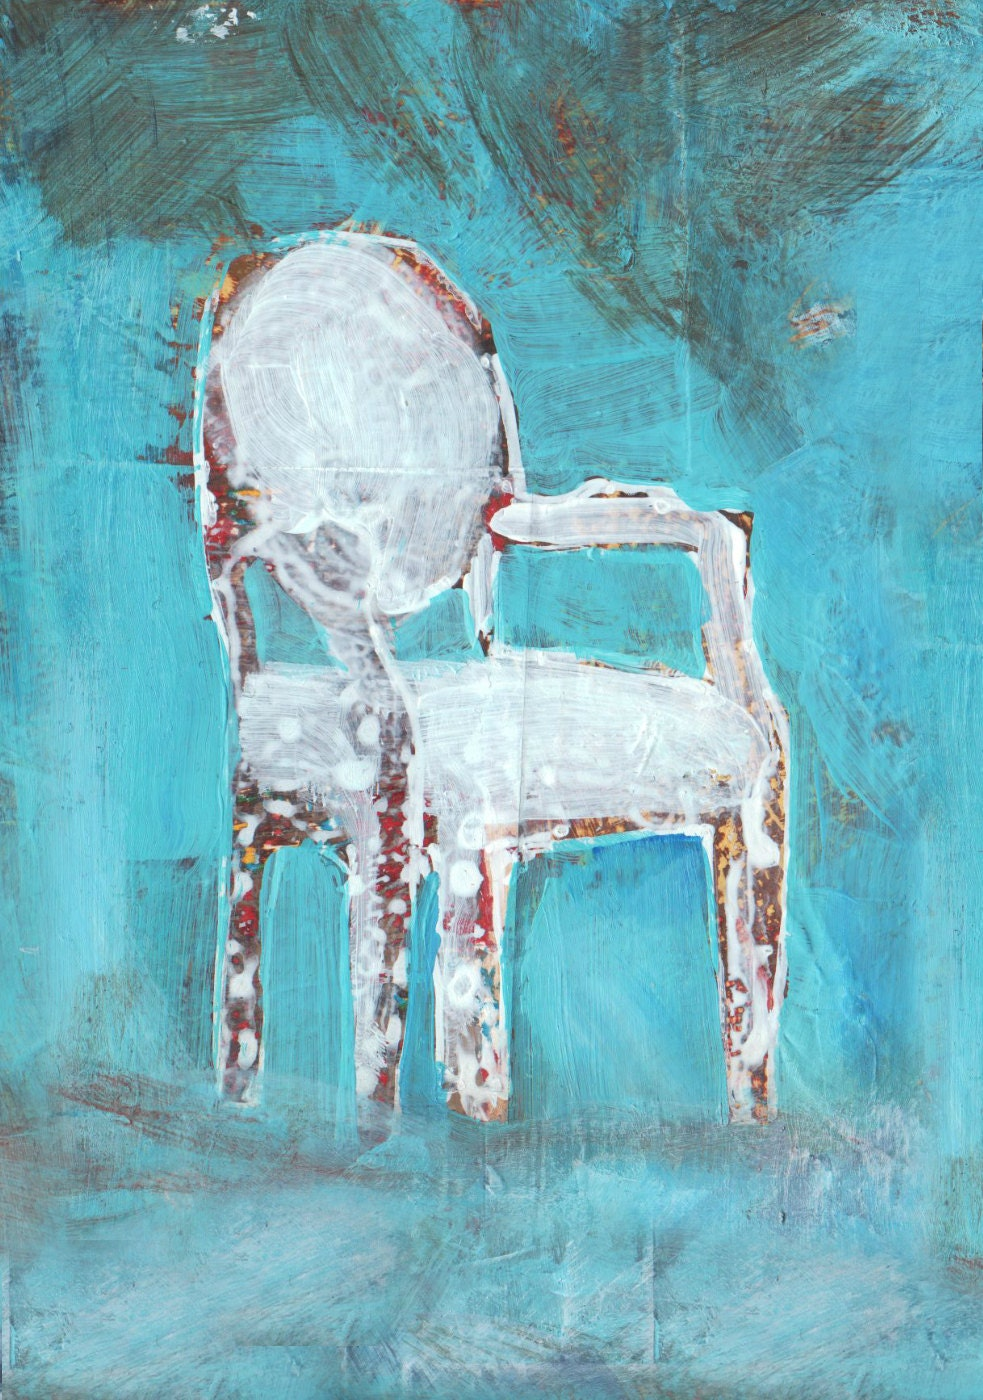 Giclee Print from Original Mixed Media Painting of a Chair - dianamulder